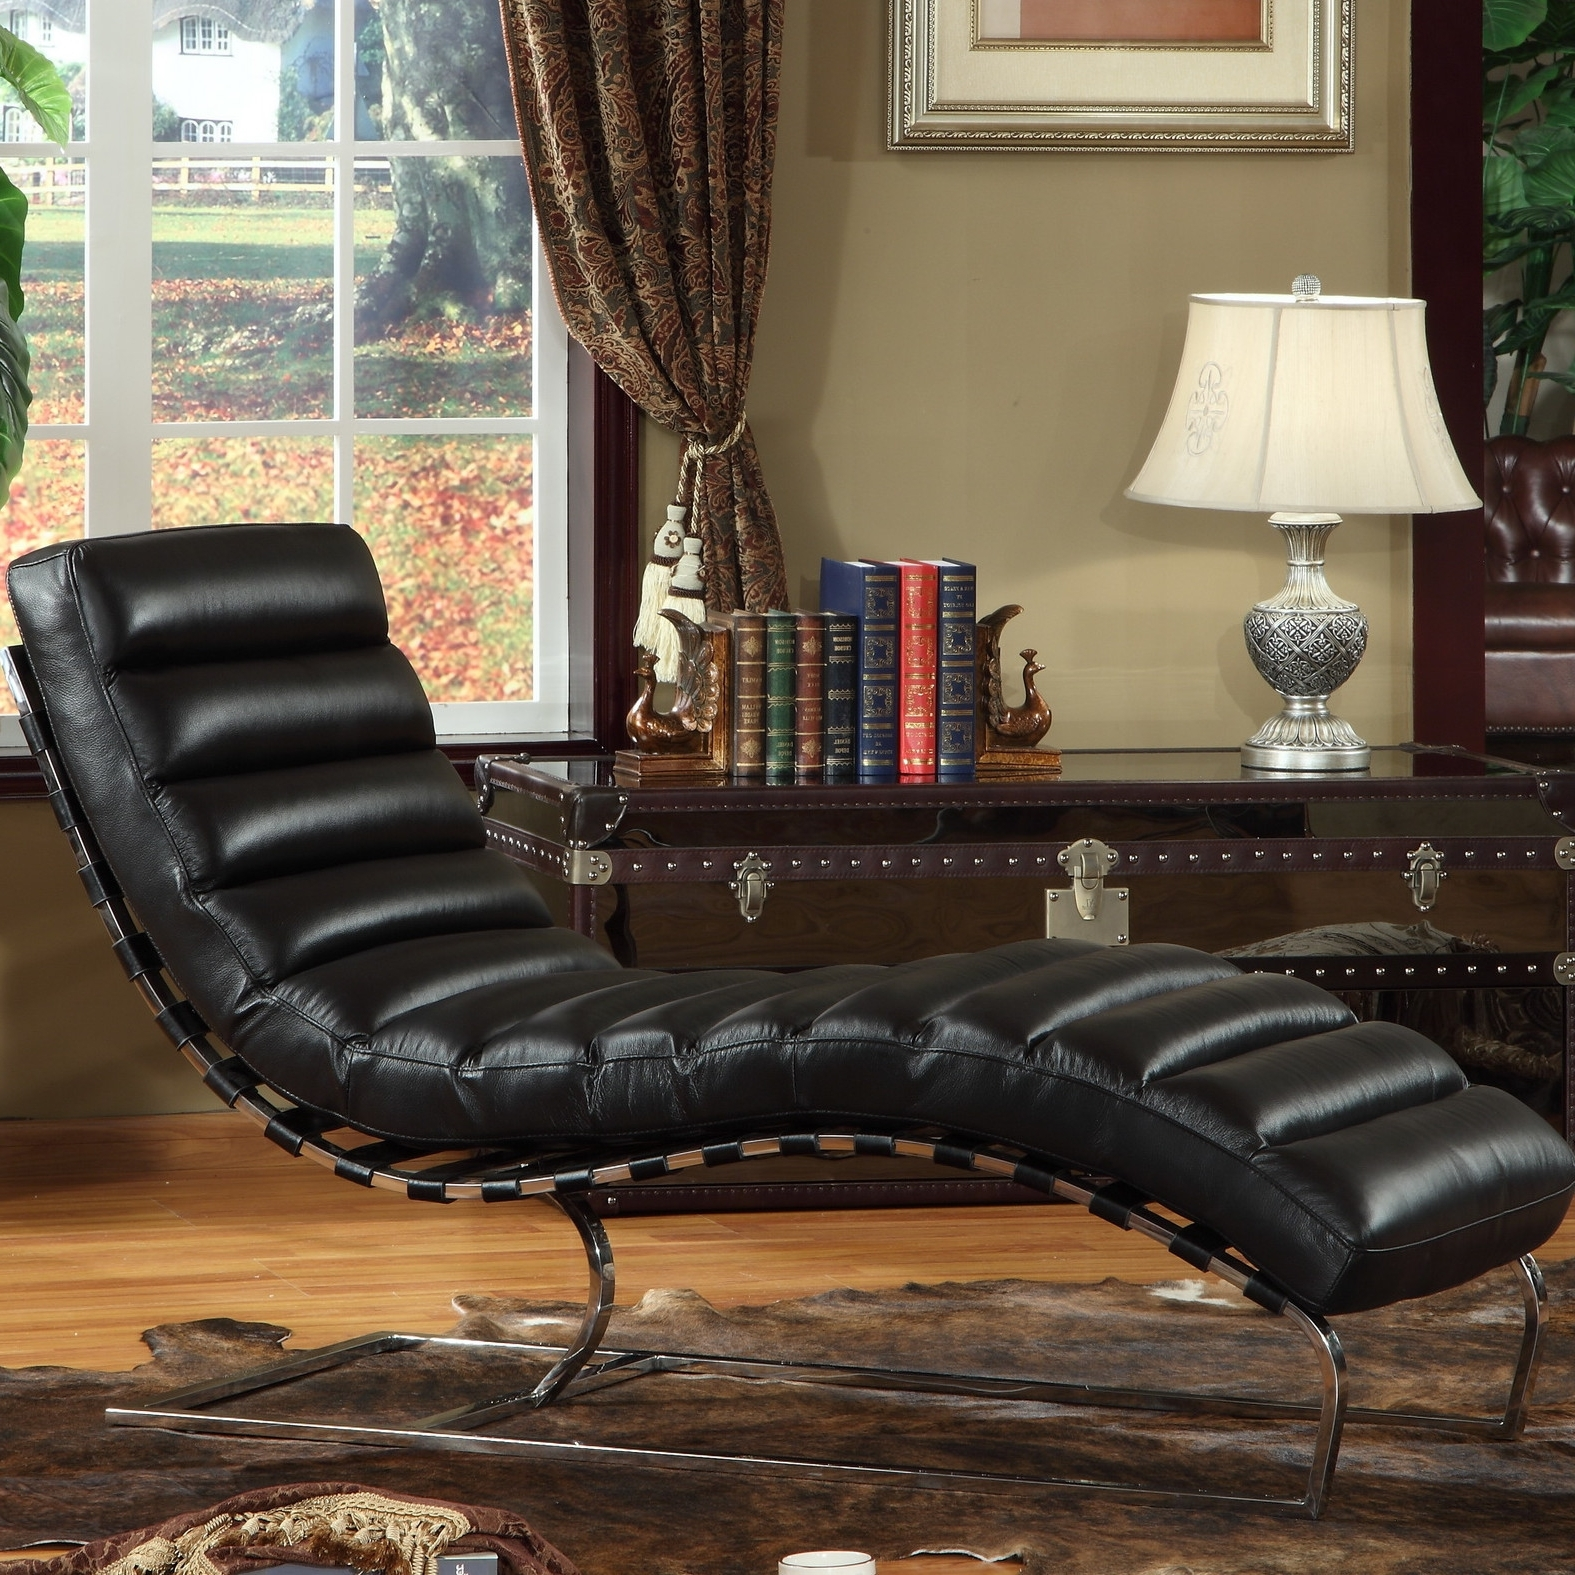 Leather Chaises With Best And Newest Top Leather Chaise Lounge Chair — Bed And Shower : Repair A (View 9 of 15)